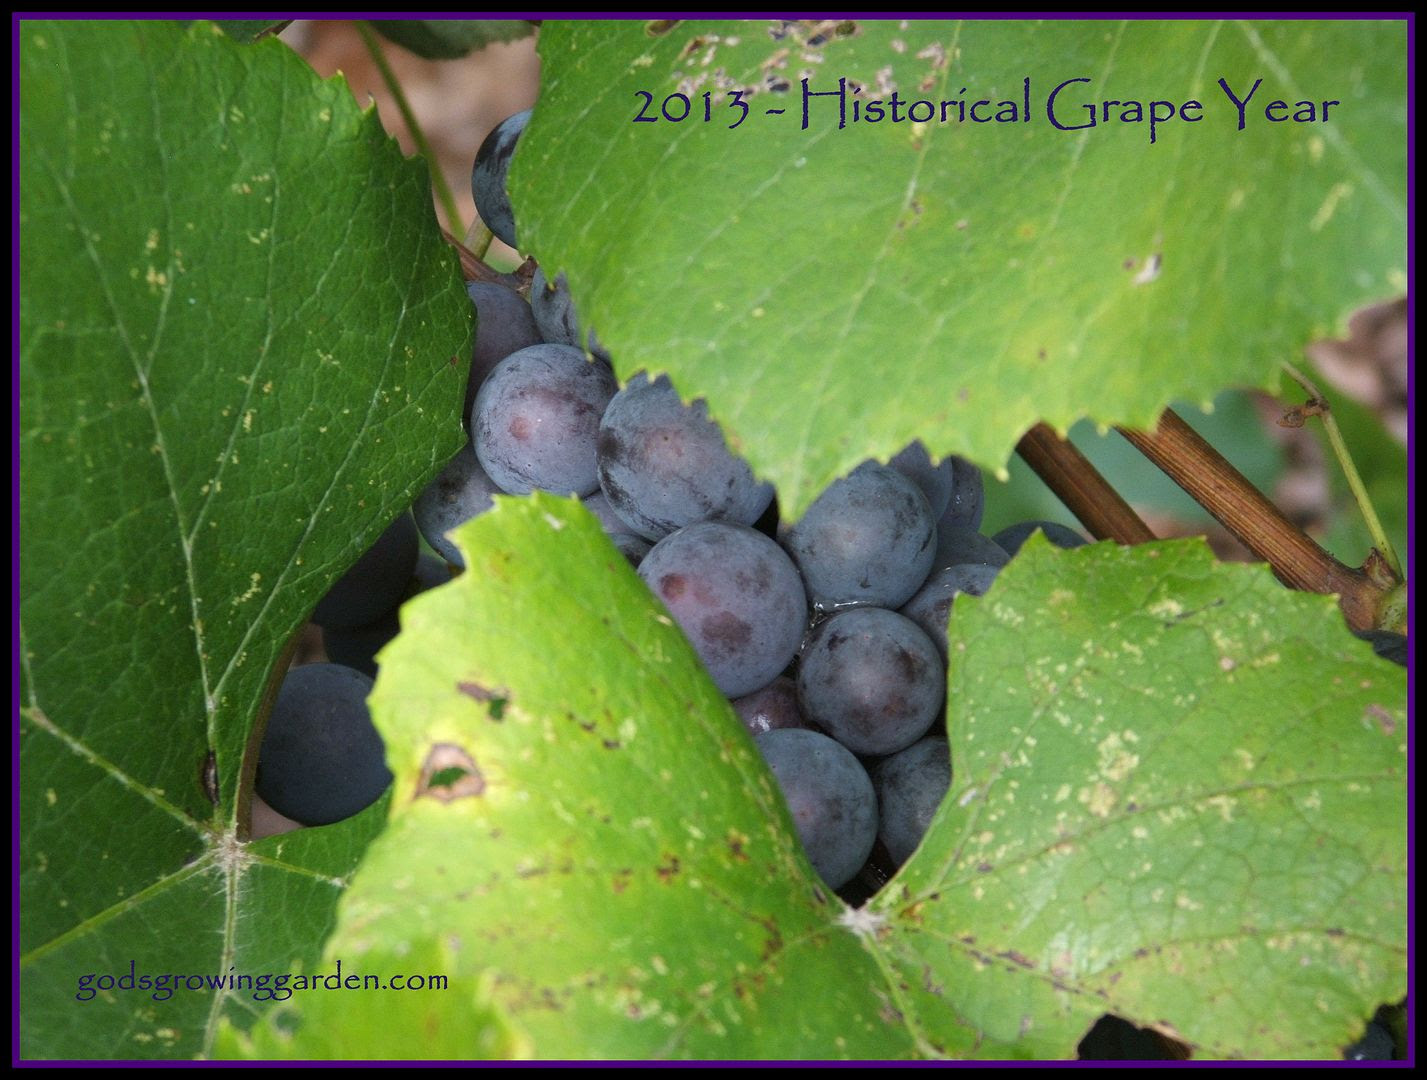 Grape Year by Angie Ouellette-Tower for godsgrowinggarden.com/ photo 010_zpsee8aadfb.jpg